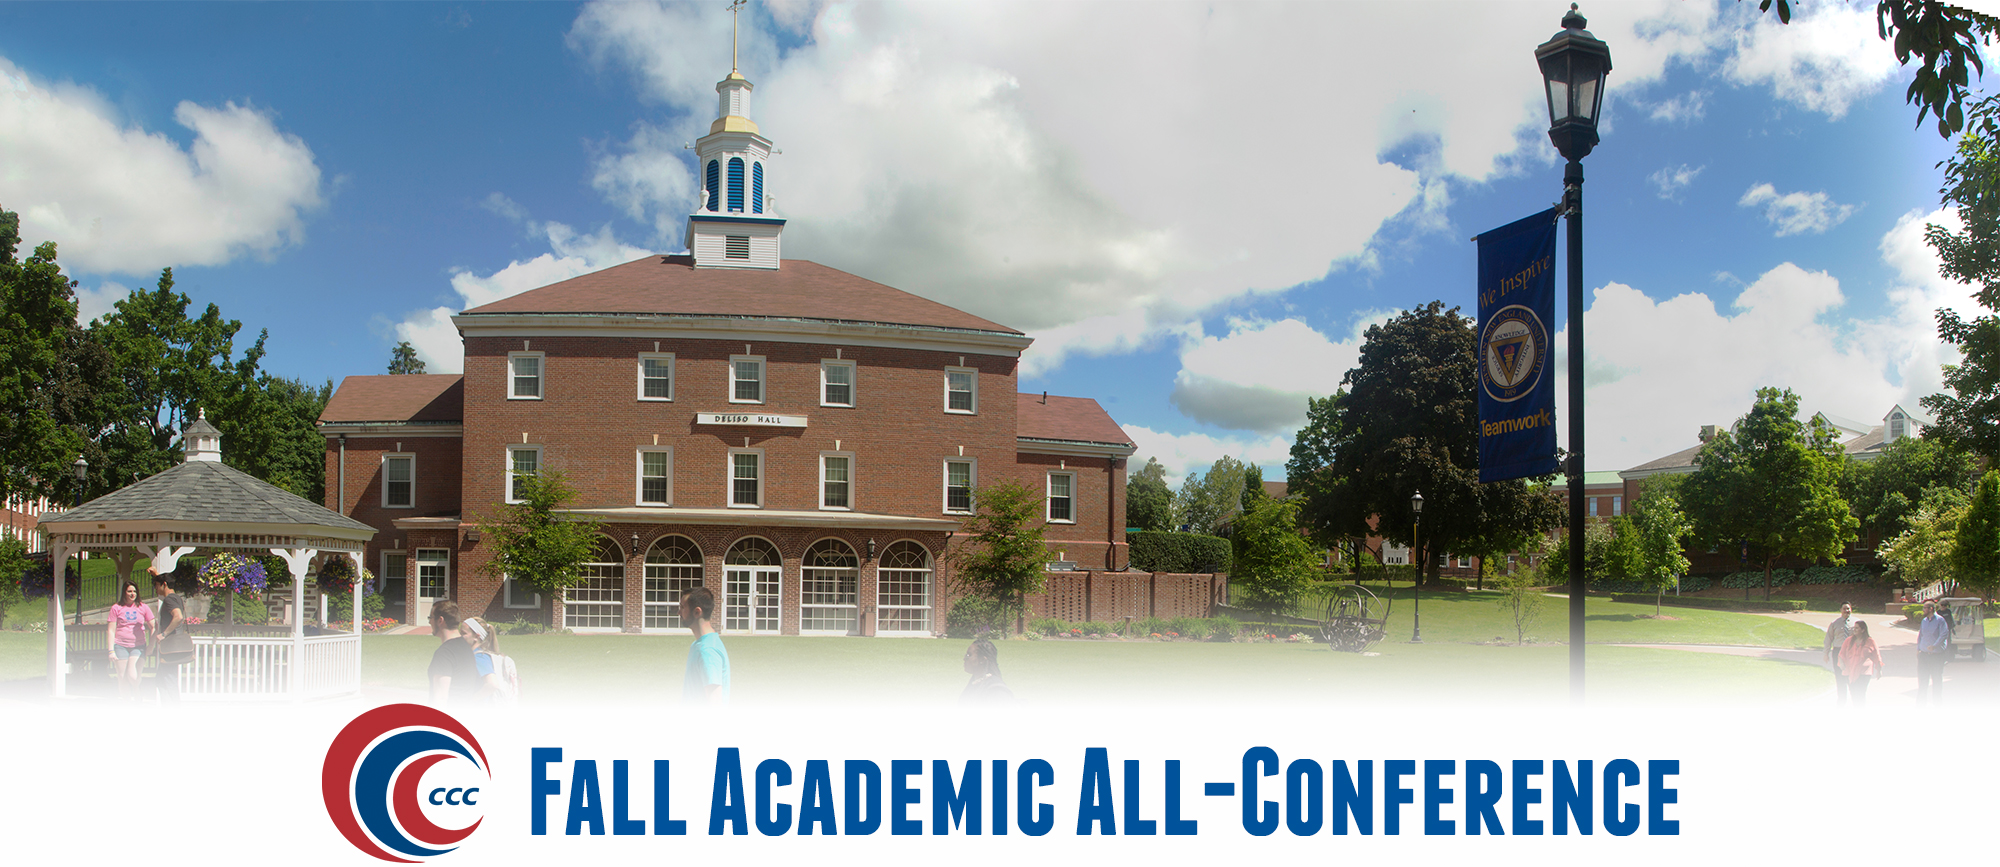 Western New England Places 84 Student-Athletes on CCC Fall Academic All-Conference Team